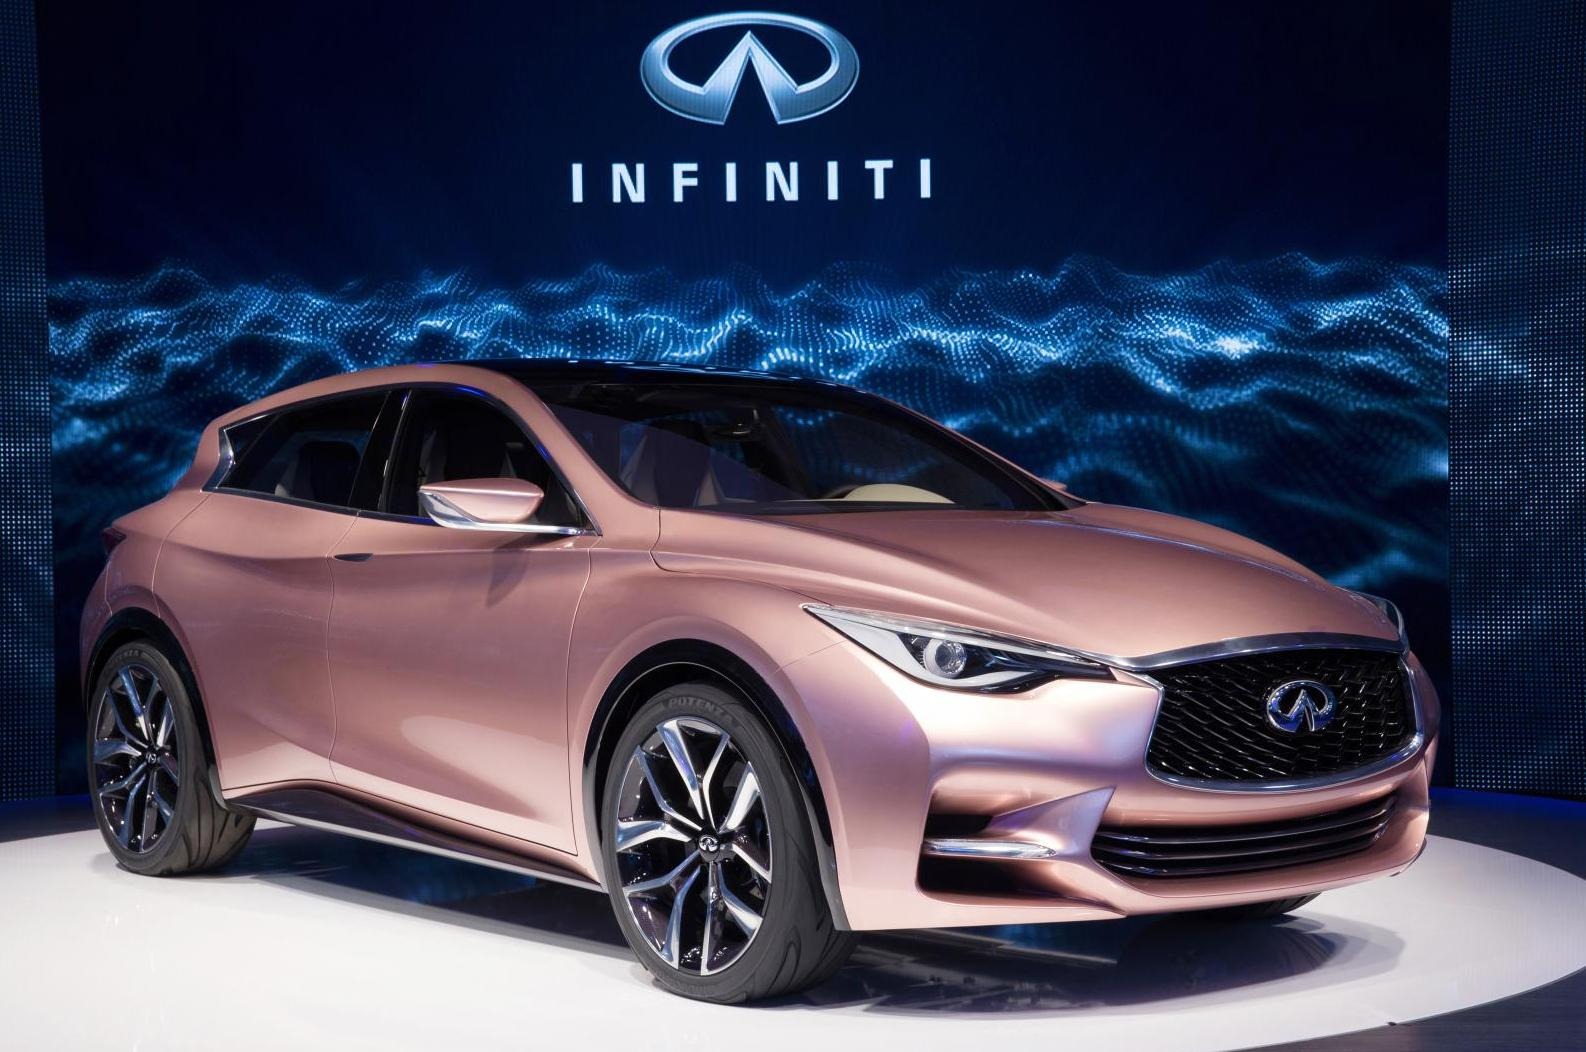 Nissan To Launch Compact Suv Gt R And Infiniti Brand In India